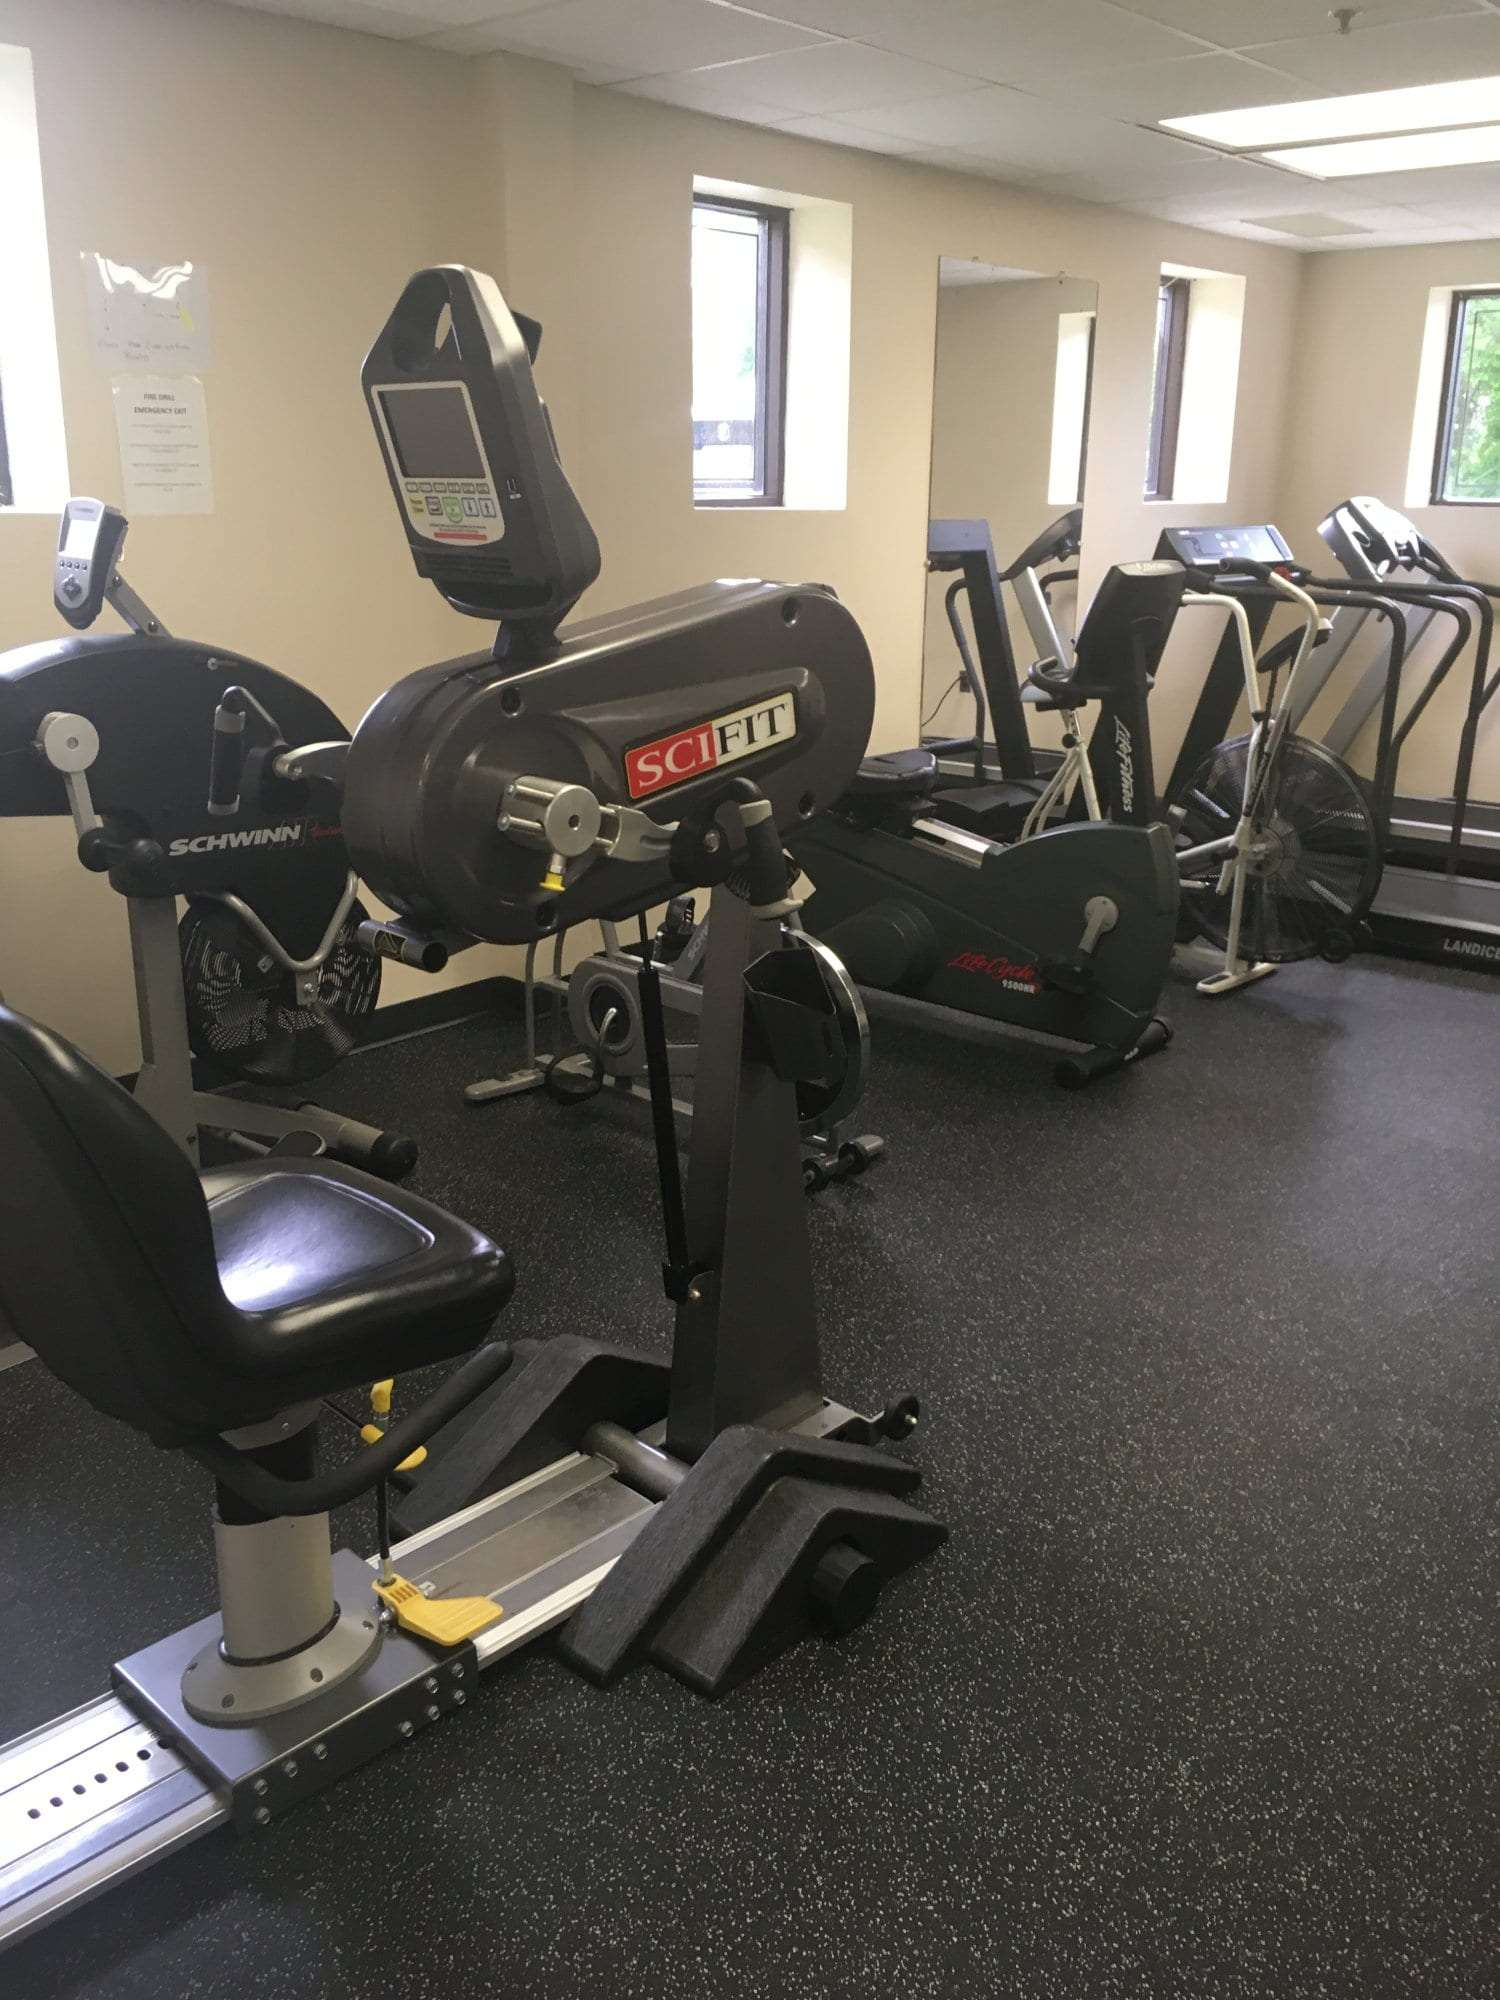 This is another shot of the equipment at our physical therapy clinic in West Caldwell, New Jersey.